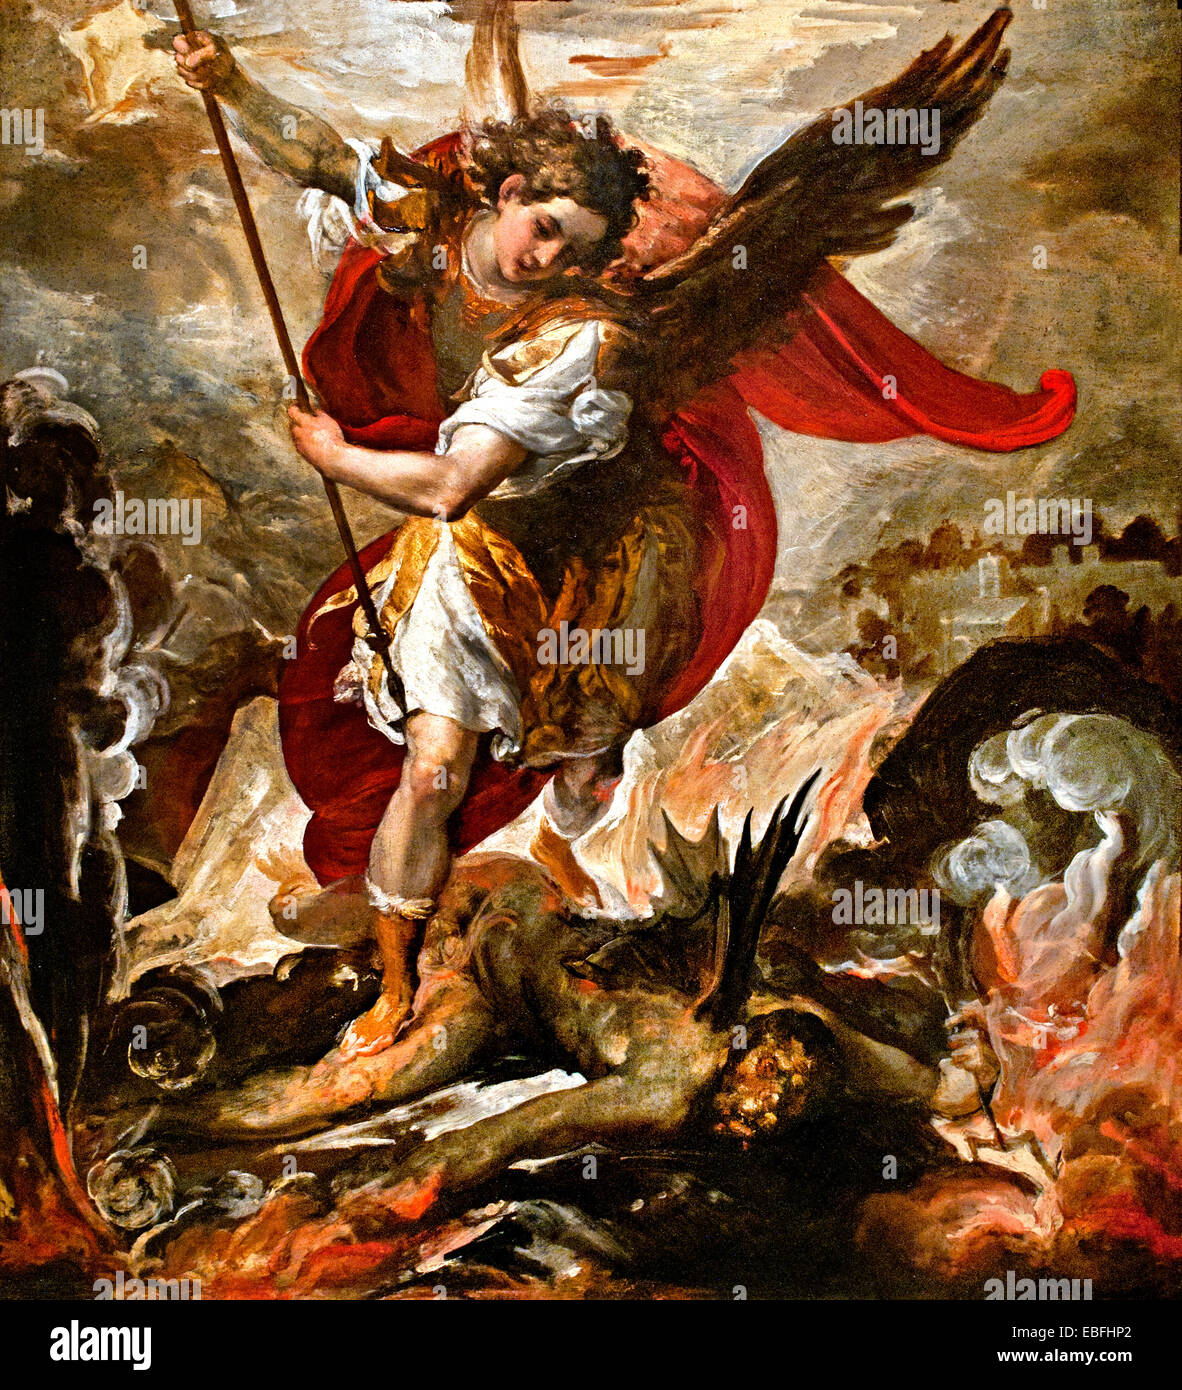 Saint Michael The Archangel Vanquishing Lucifer 1656